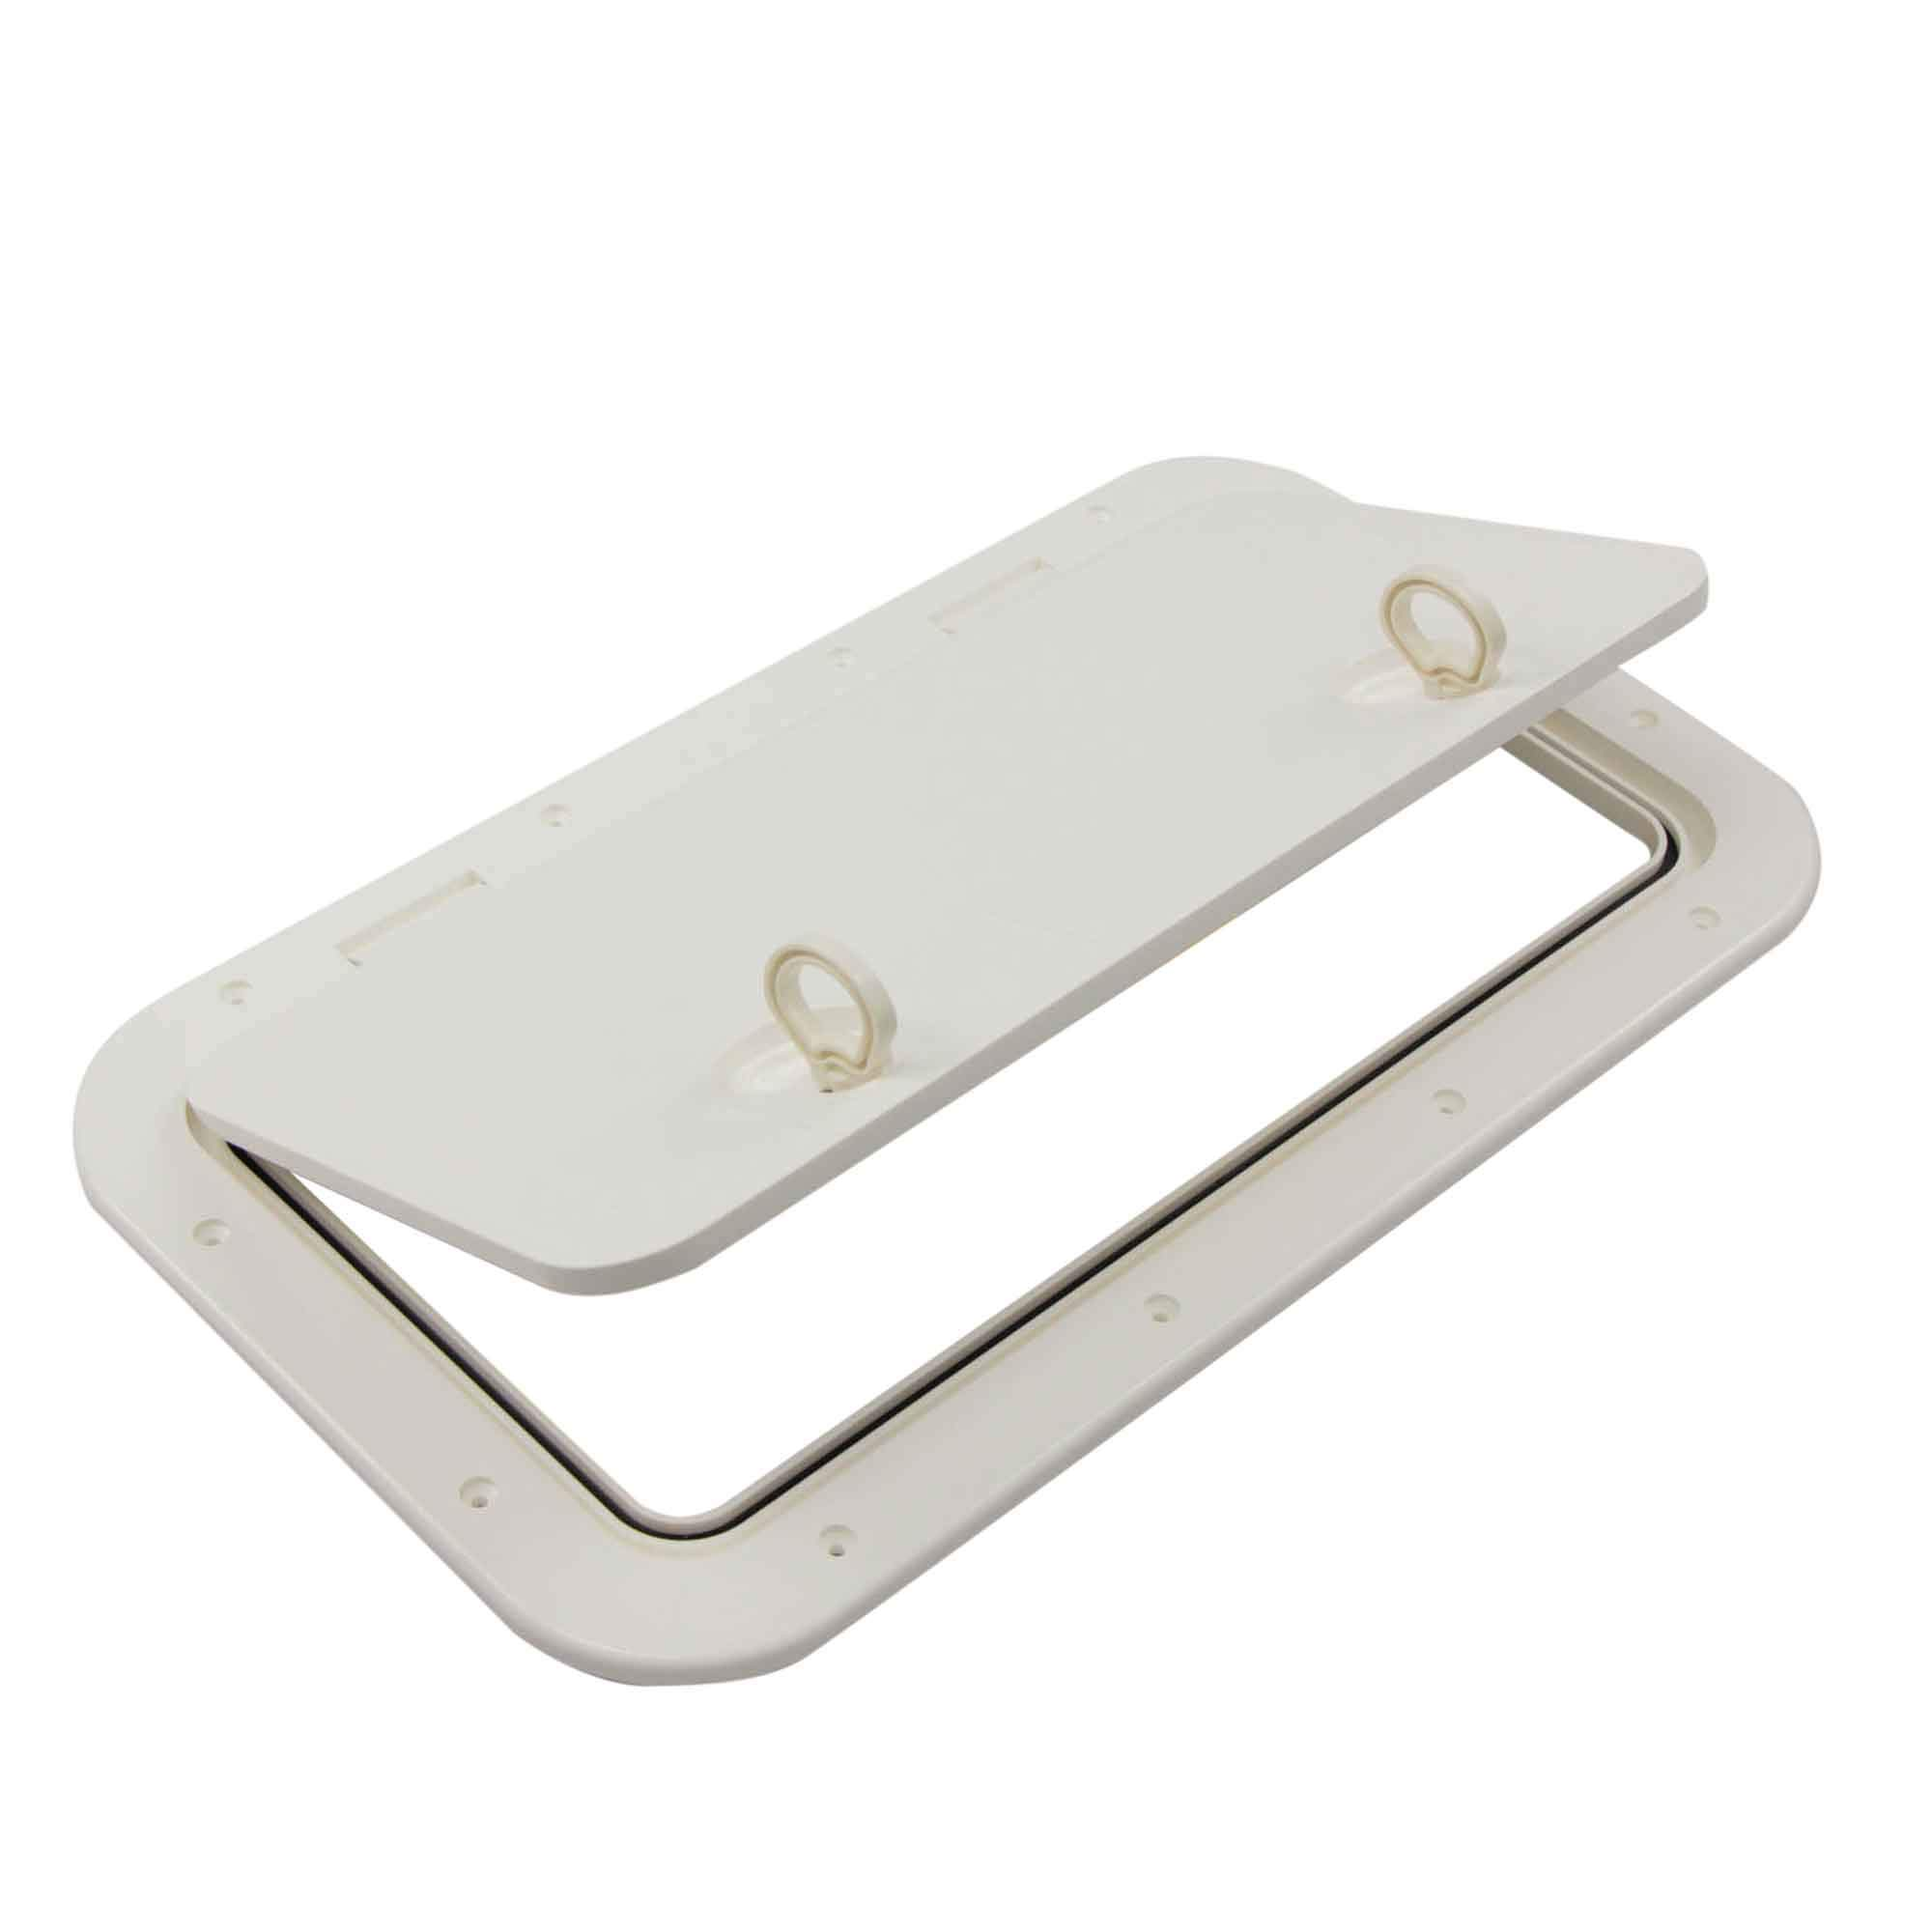 Five Oceans Marine Access Hatch with Lock 23 1/2'' x 13 5/8'' FO-2348 by Five Oceans